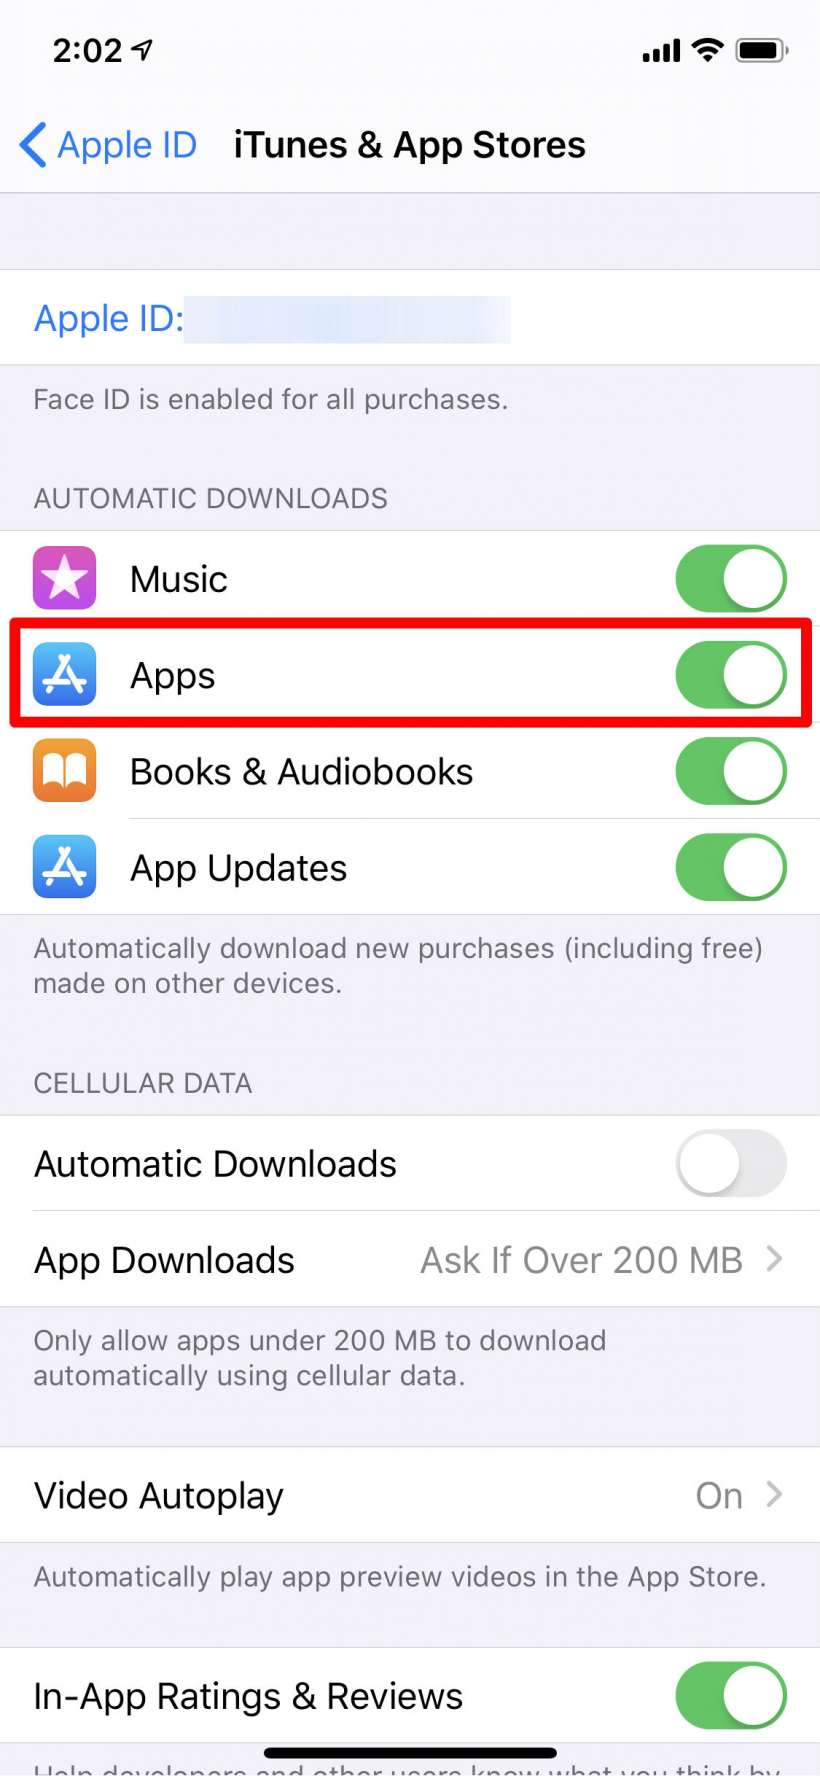 How to automatically download apps to all of your devices - iPhone, Mac, iPad.